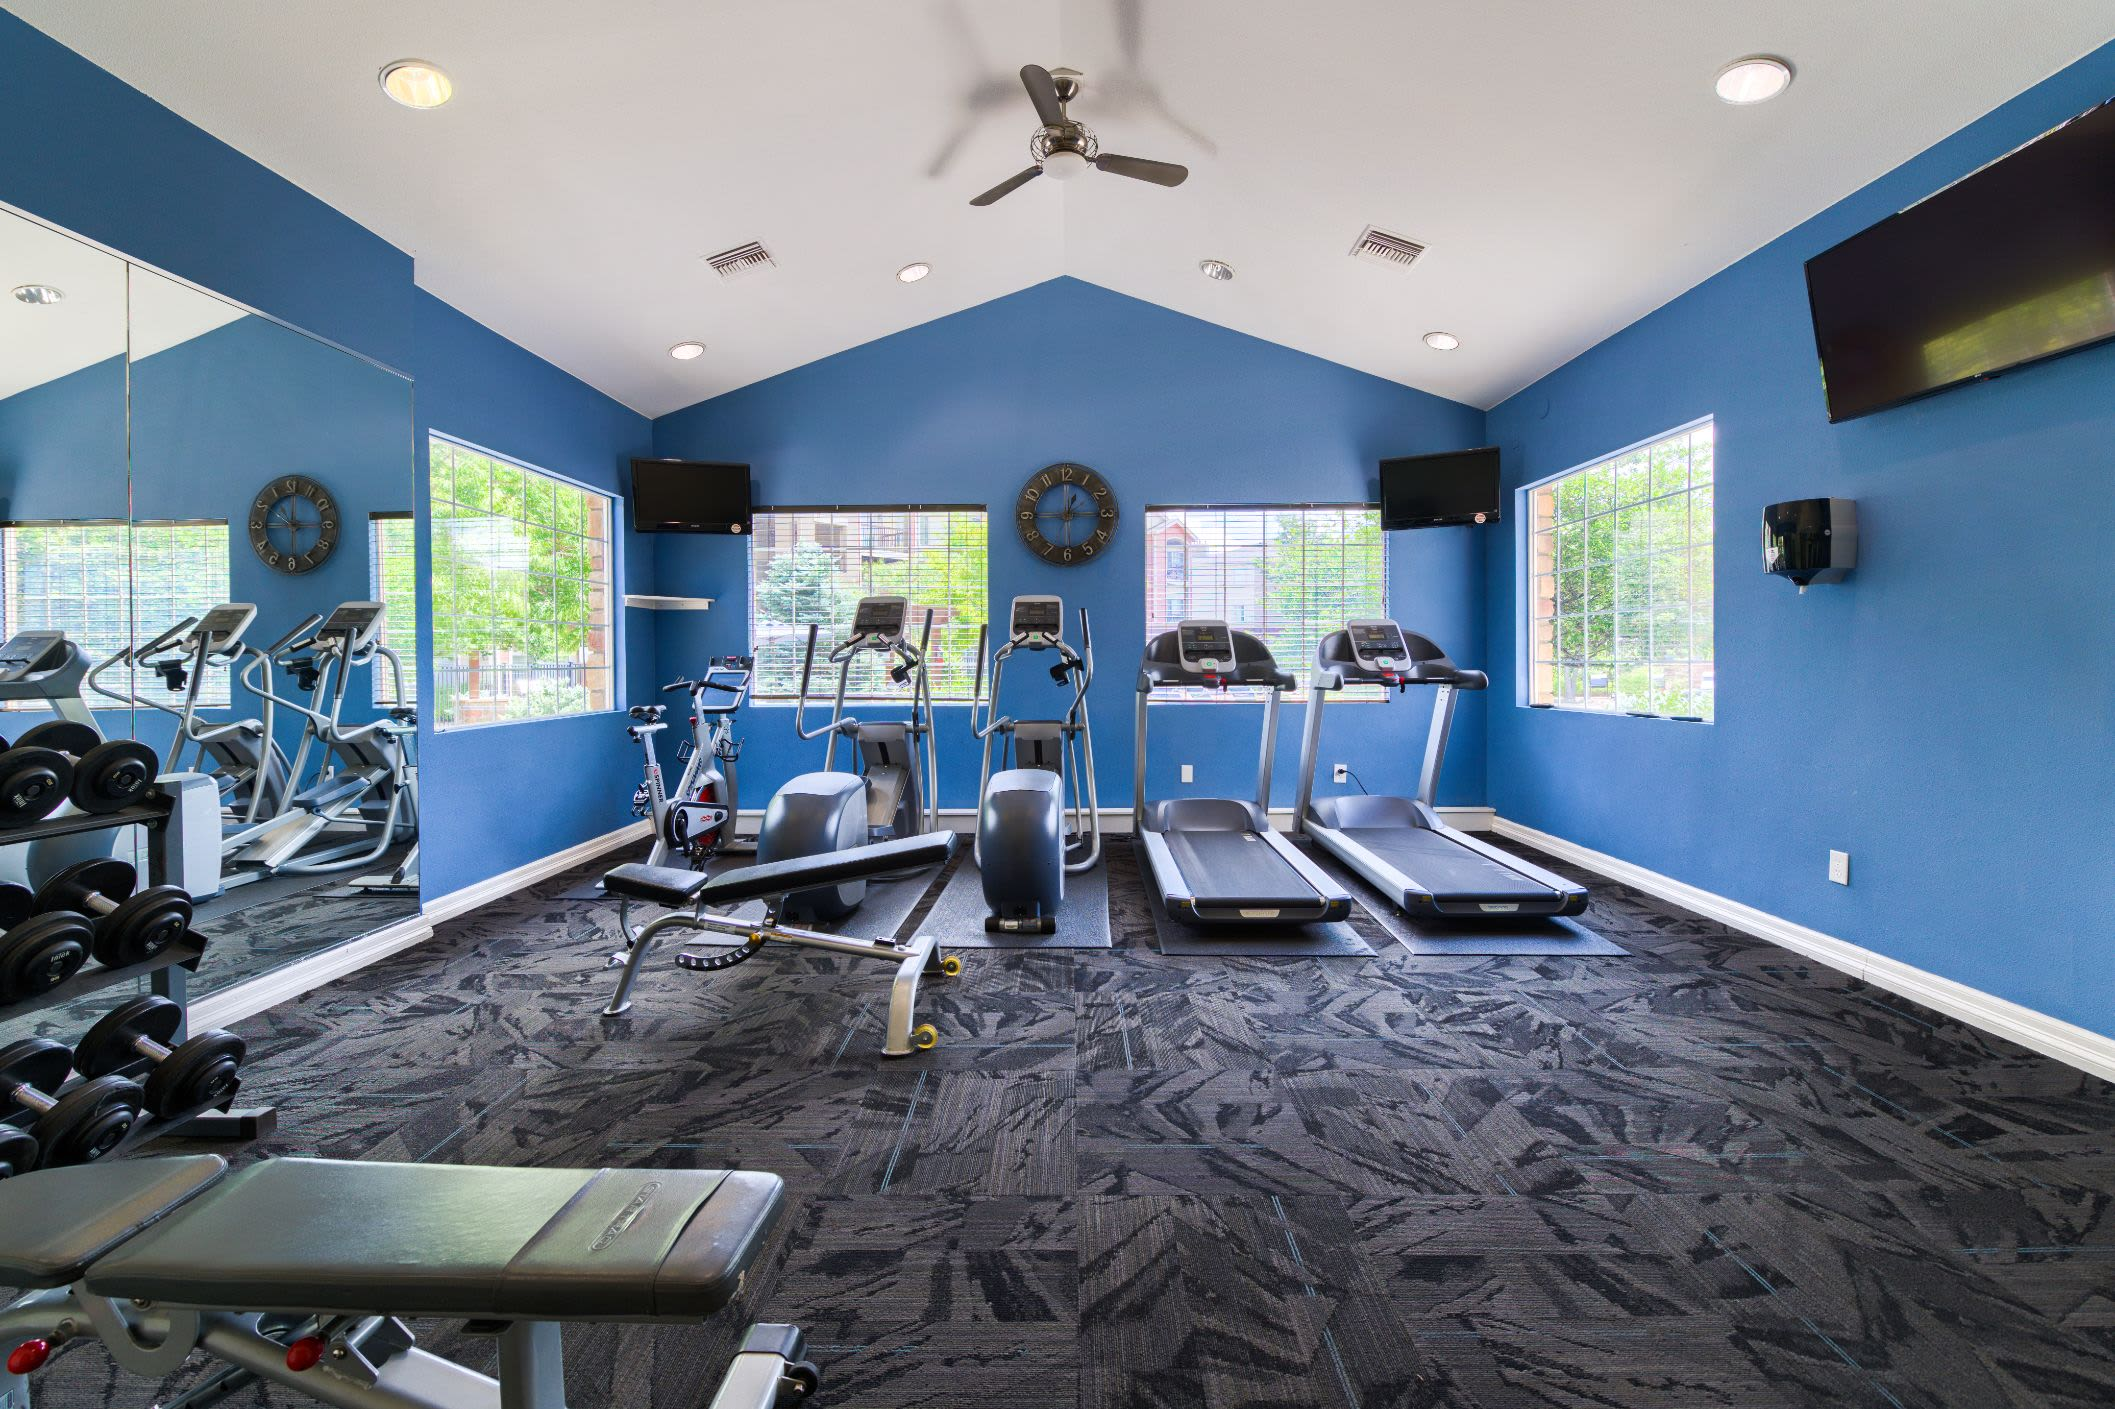 Treadmills in the fitness center at Whisper Creek Apartment Homes in Lakewood, Colorado